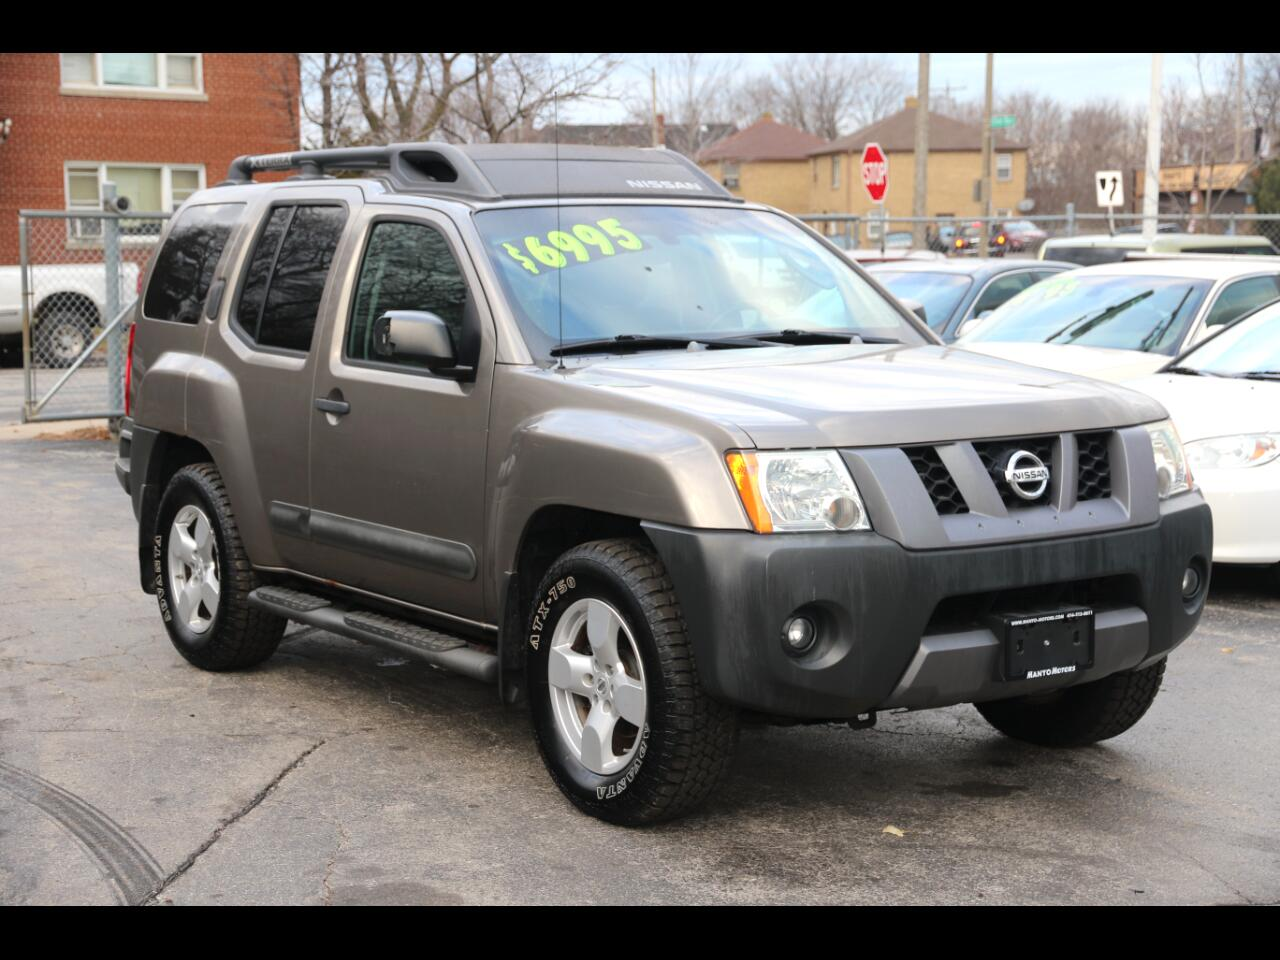 Used 2006 Nissan Xterra Se 4wd For Sale In Milwaukee Wi 53209 Manyo Motors